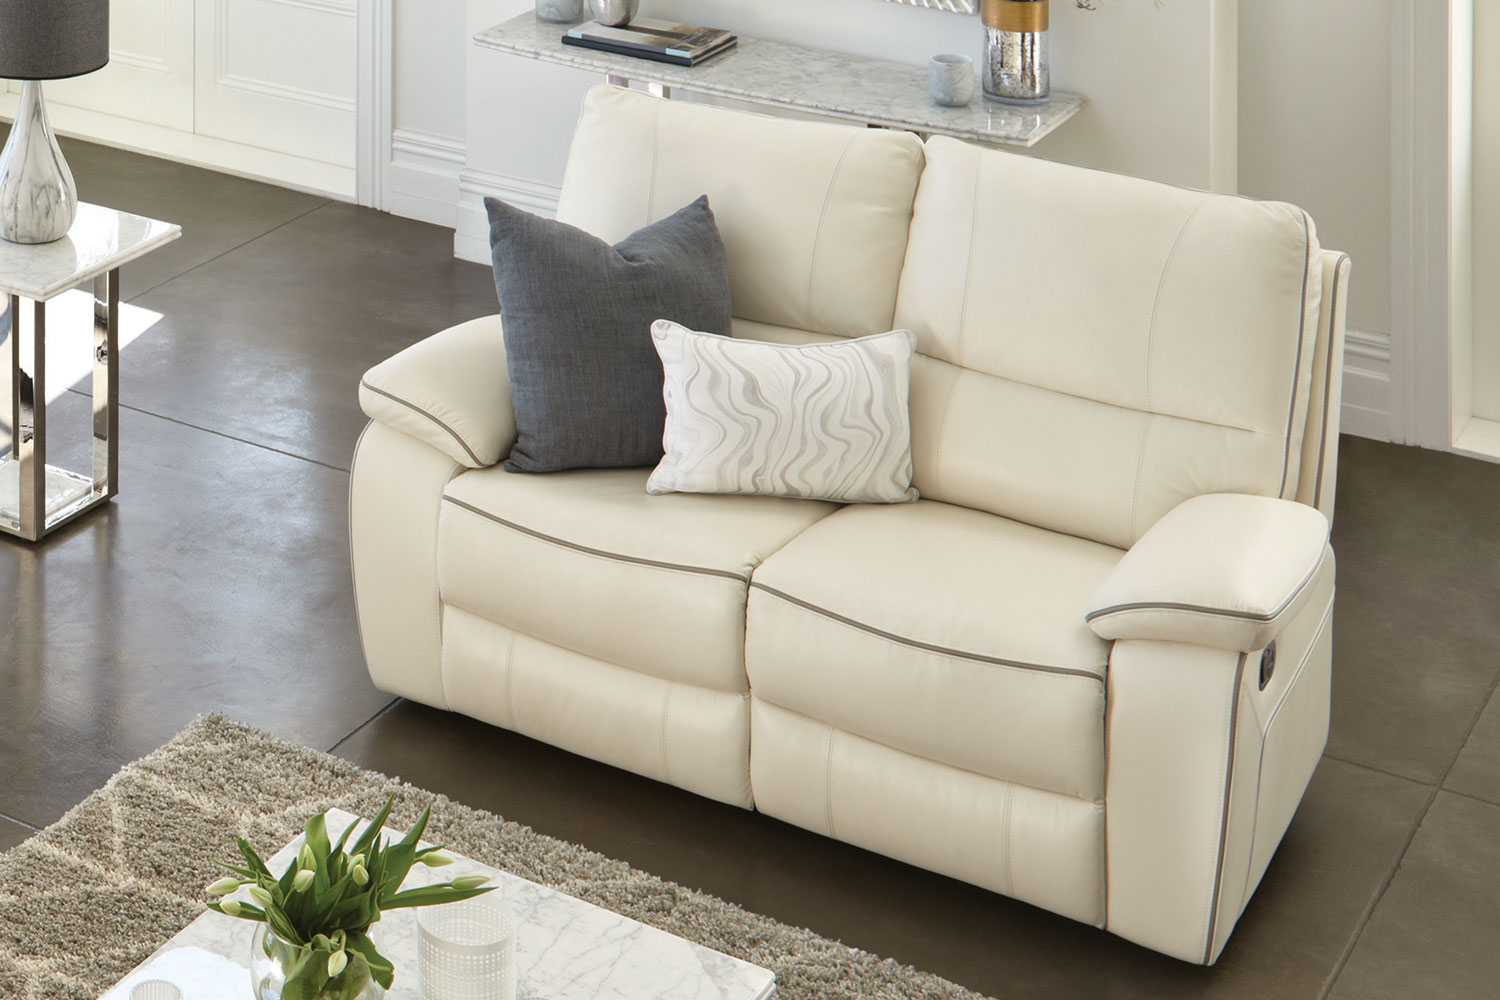 Corsetta 2 Seater Recliner Sofa Strata 2 Seater Leather Recliner Sofa By Synargy | Harvey